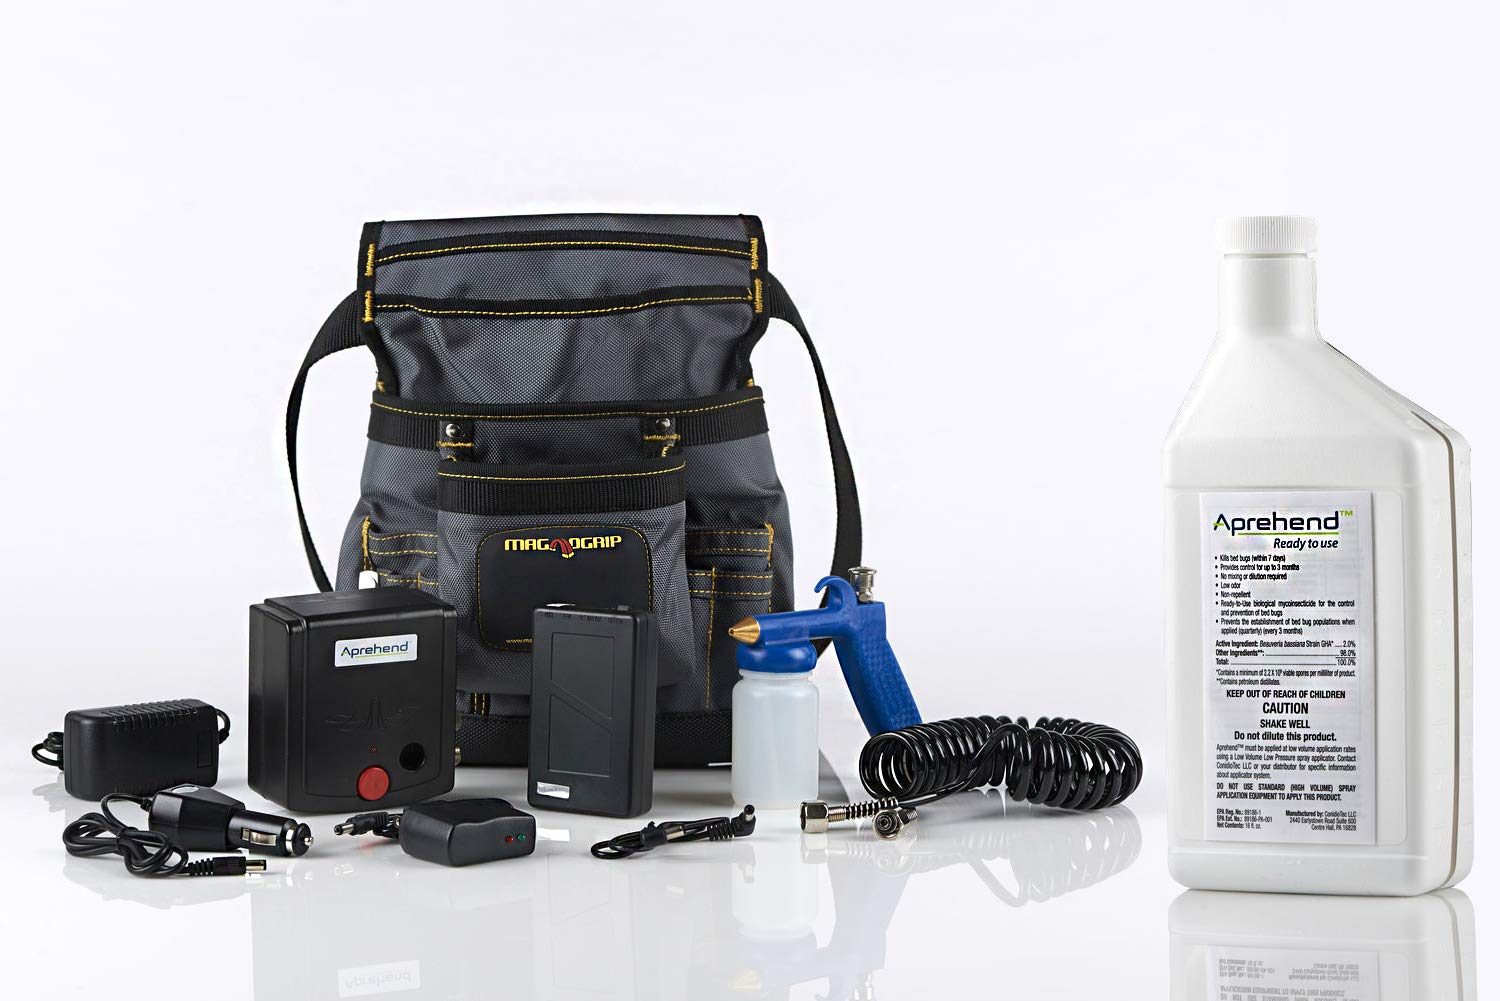 Aprehend Low Volume Sprayer Kit for Getting Rid of and Killing Bed Bugs for Good